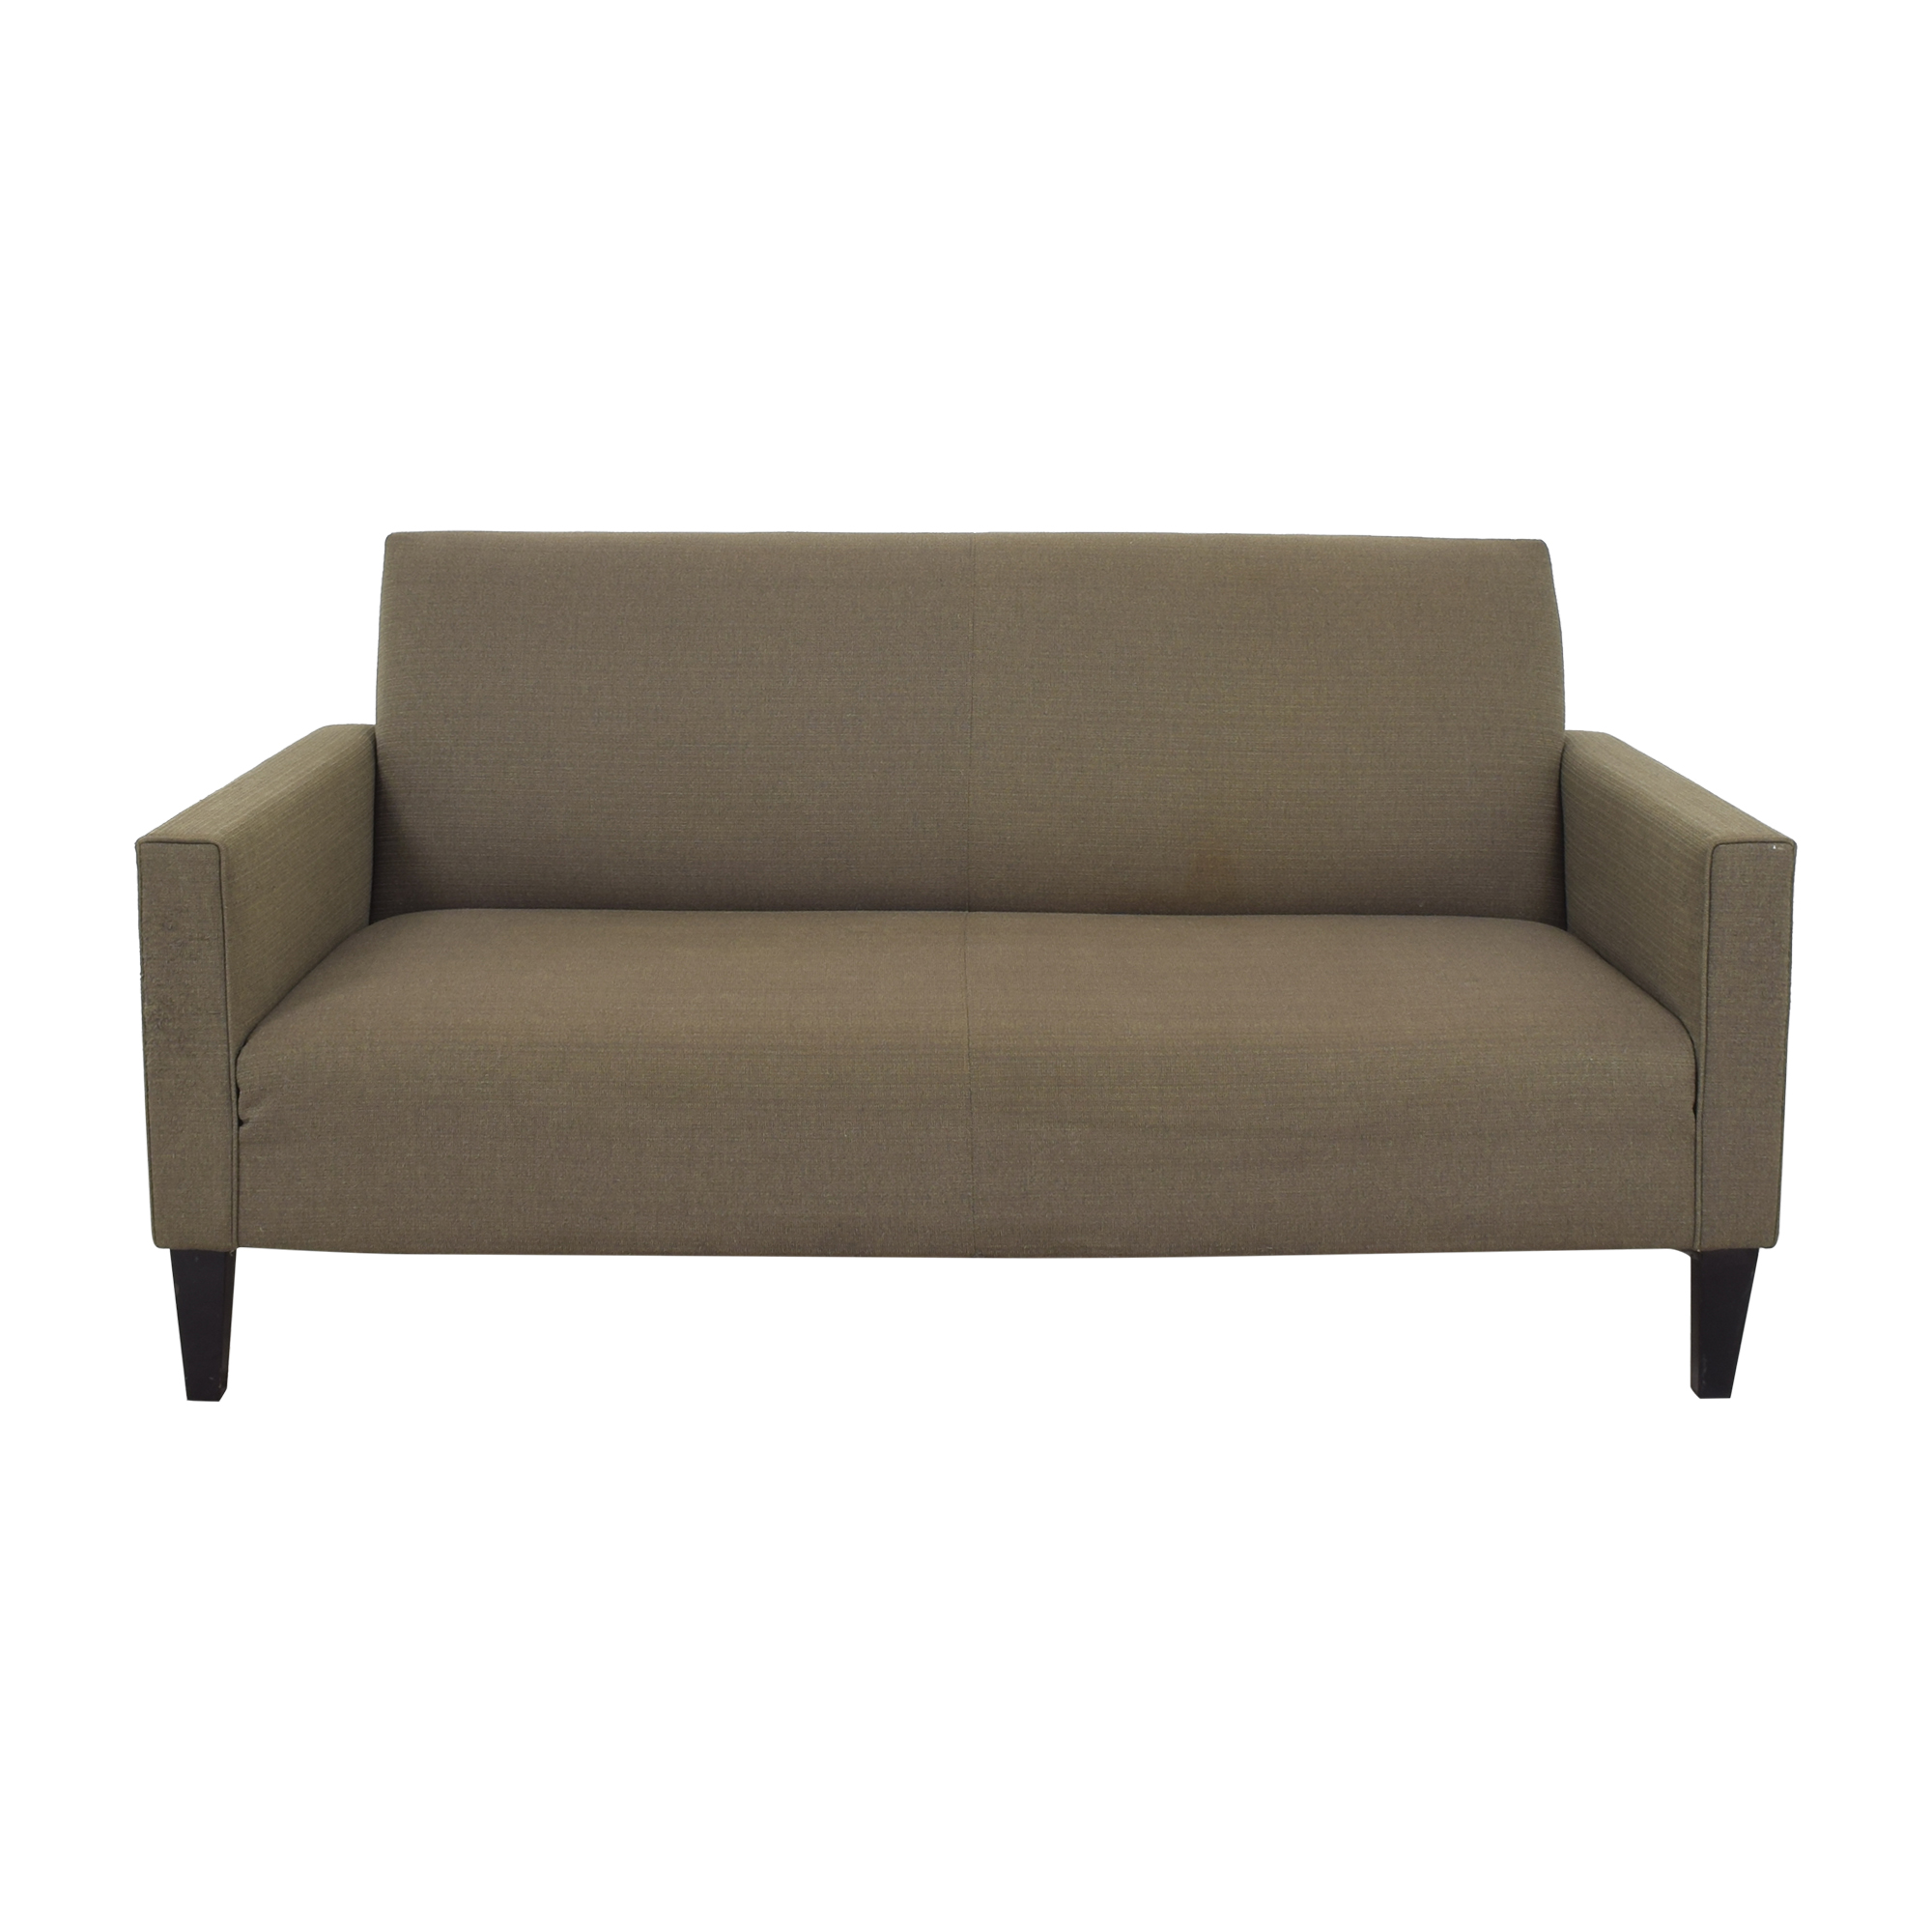 Crate & Barrel Crate & Barrel Single Cushion Sofa Classic Sofas